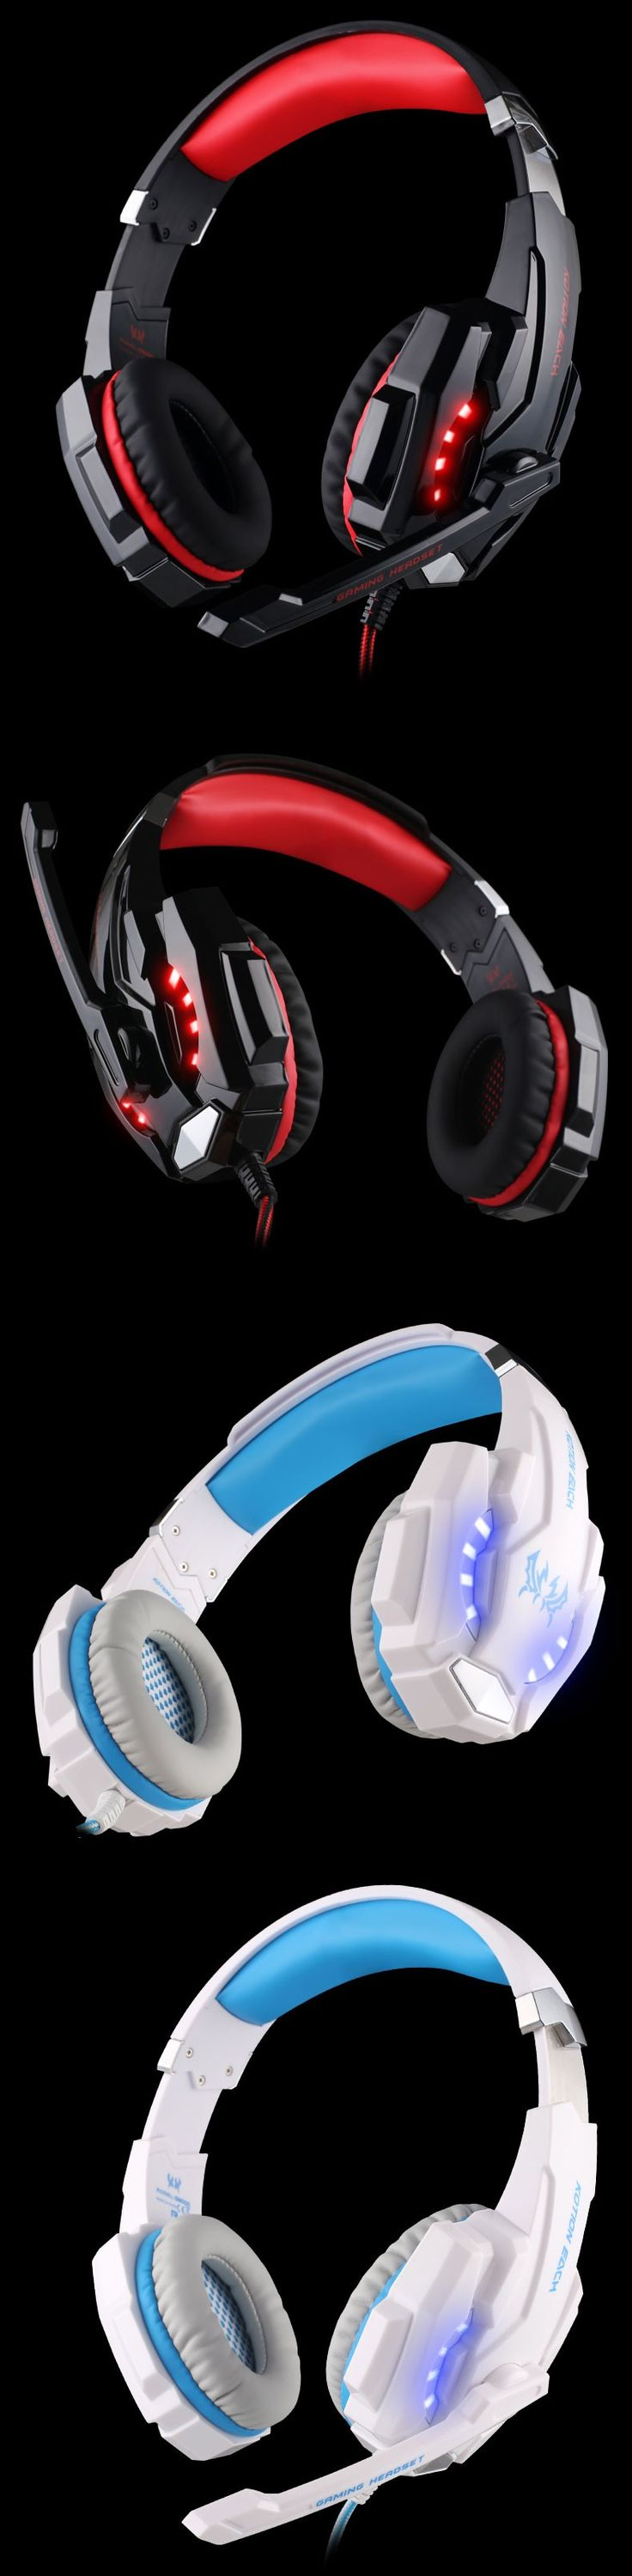 KOTION EACH G9000 USB 7.1 Surround Sound Version Game Gaming PC Headphone Computer Headset Earphone Headband With Microphone | #HeadphonesGaming